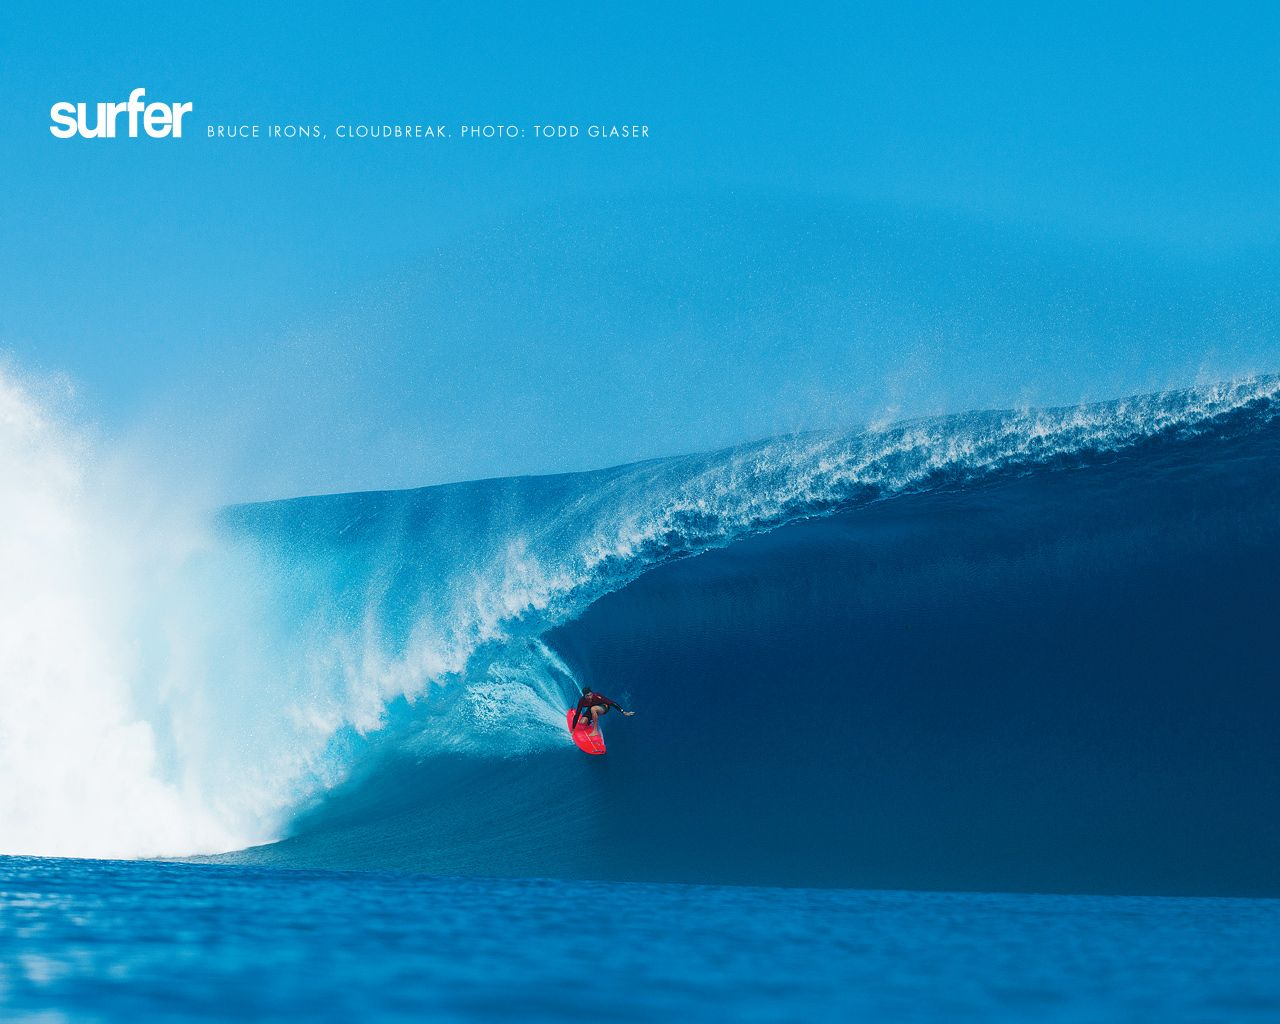 Surfer Magazine Surf News Fantasy Surfer Photos Video And Forecasting Surfing Surfing Waves Surfing Photography